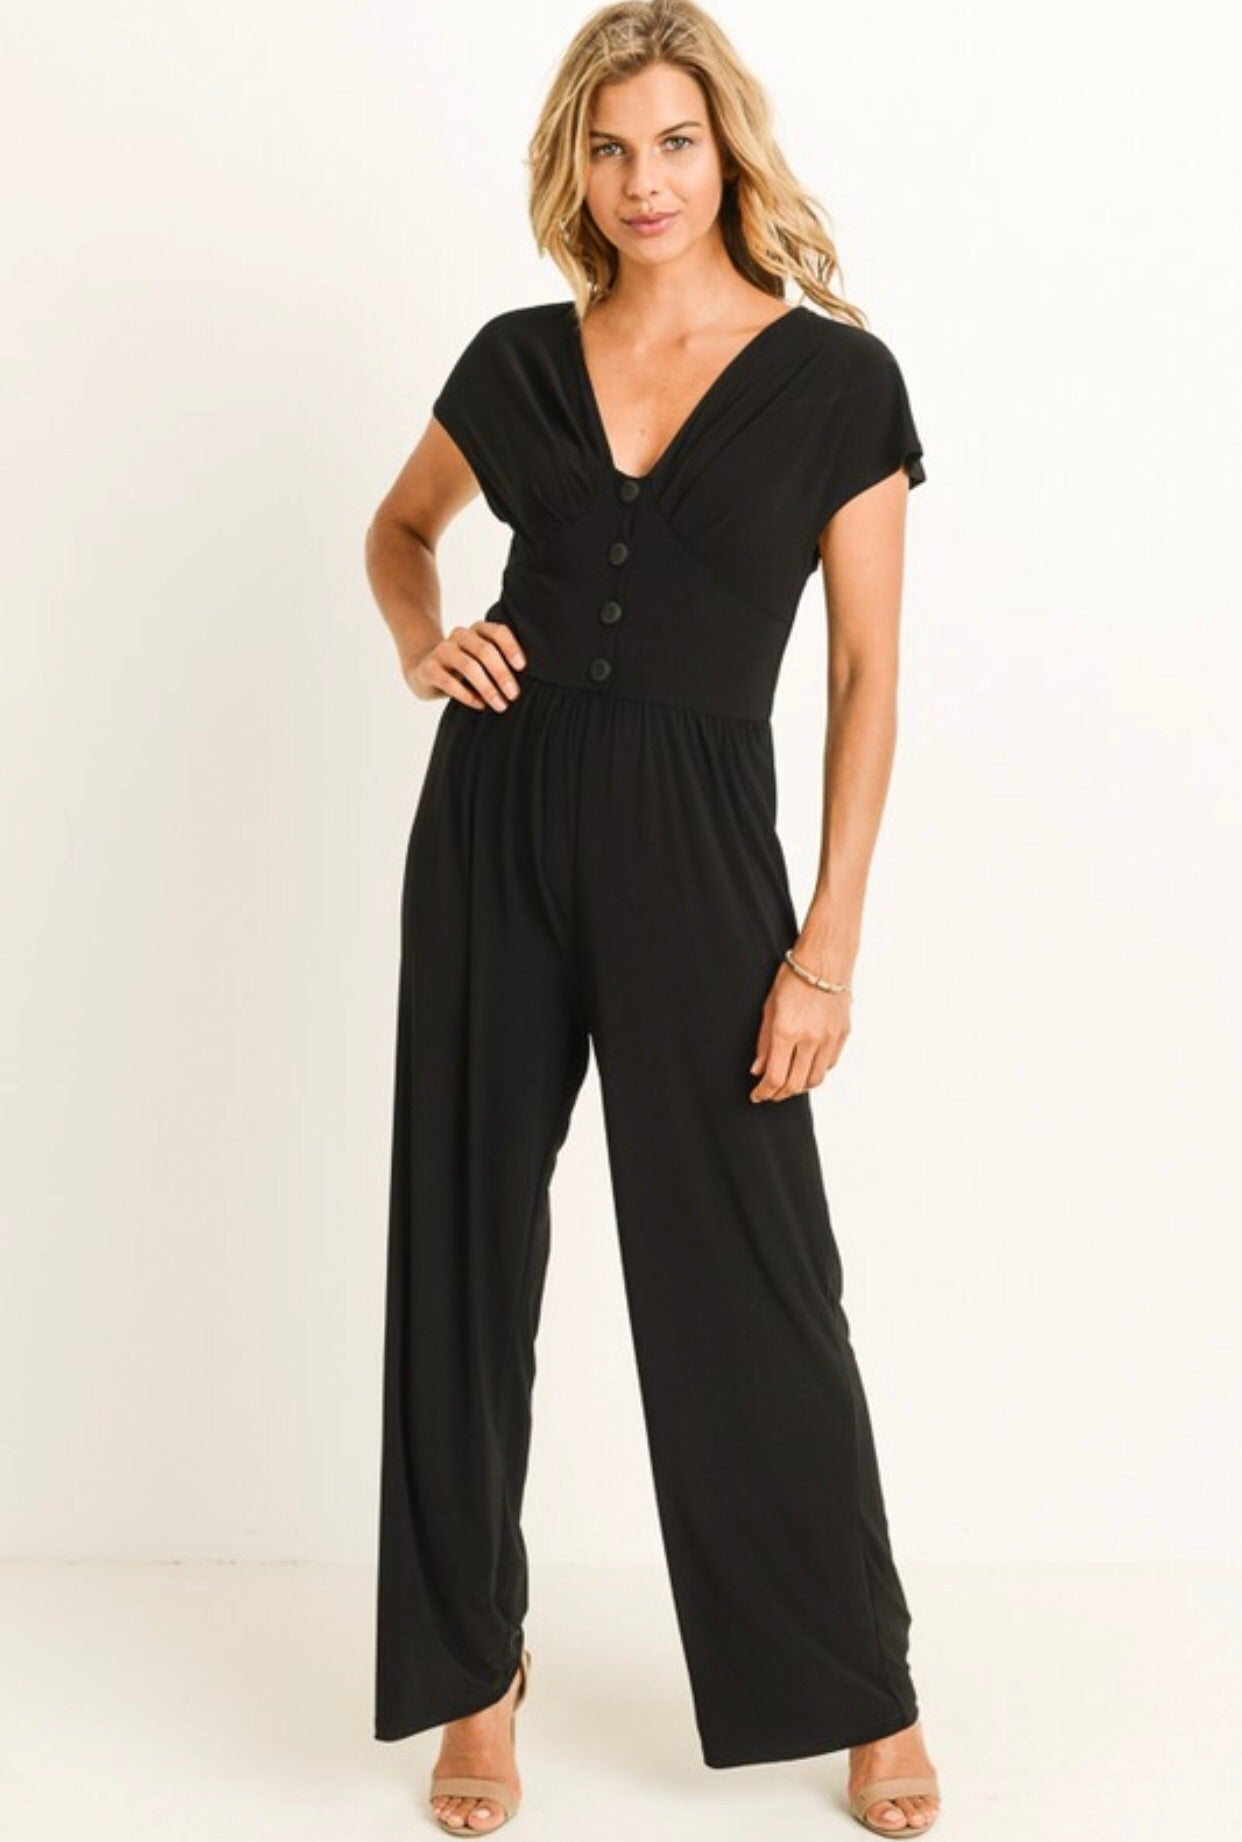 PERFECT BLACK JUMPSUIT